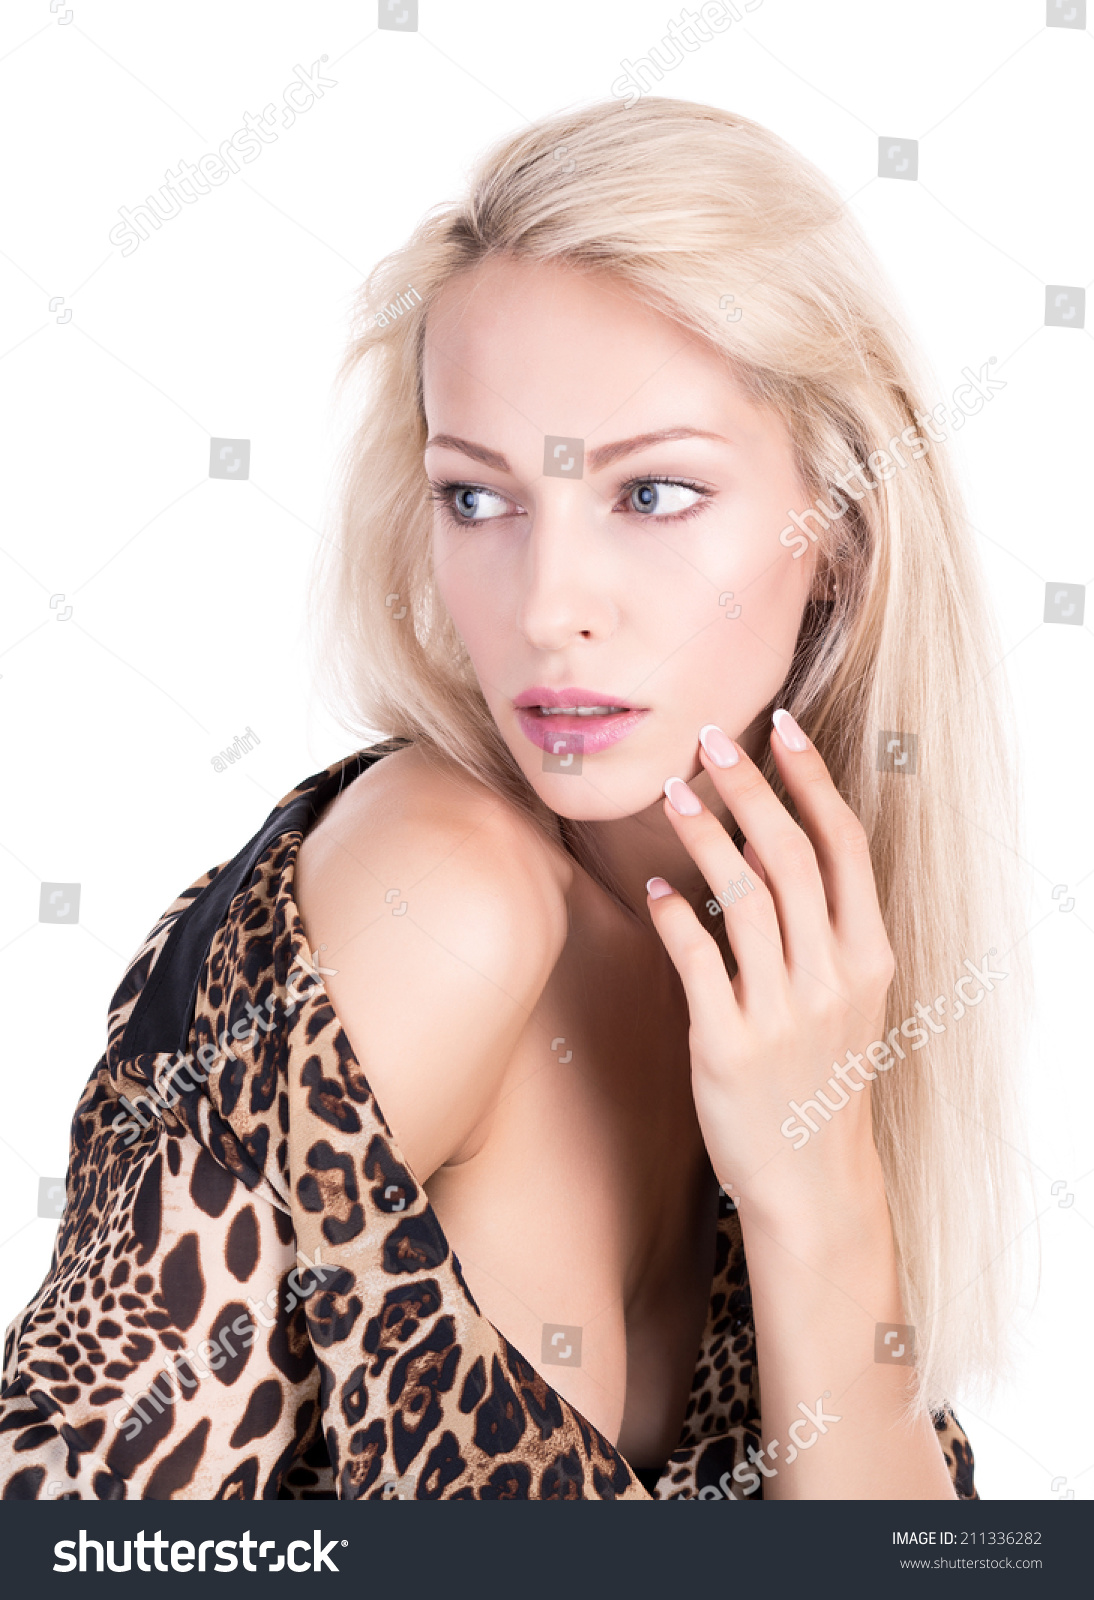 Fashion model with blue eyes and blonde hair on white background